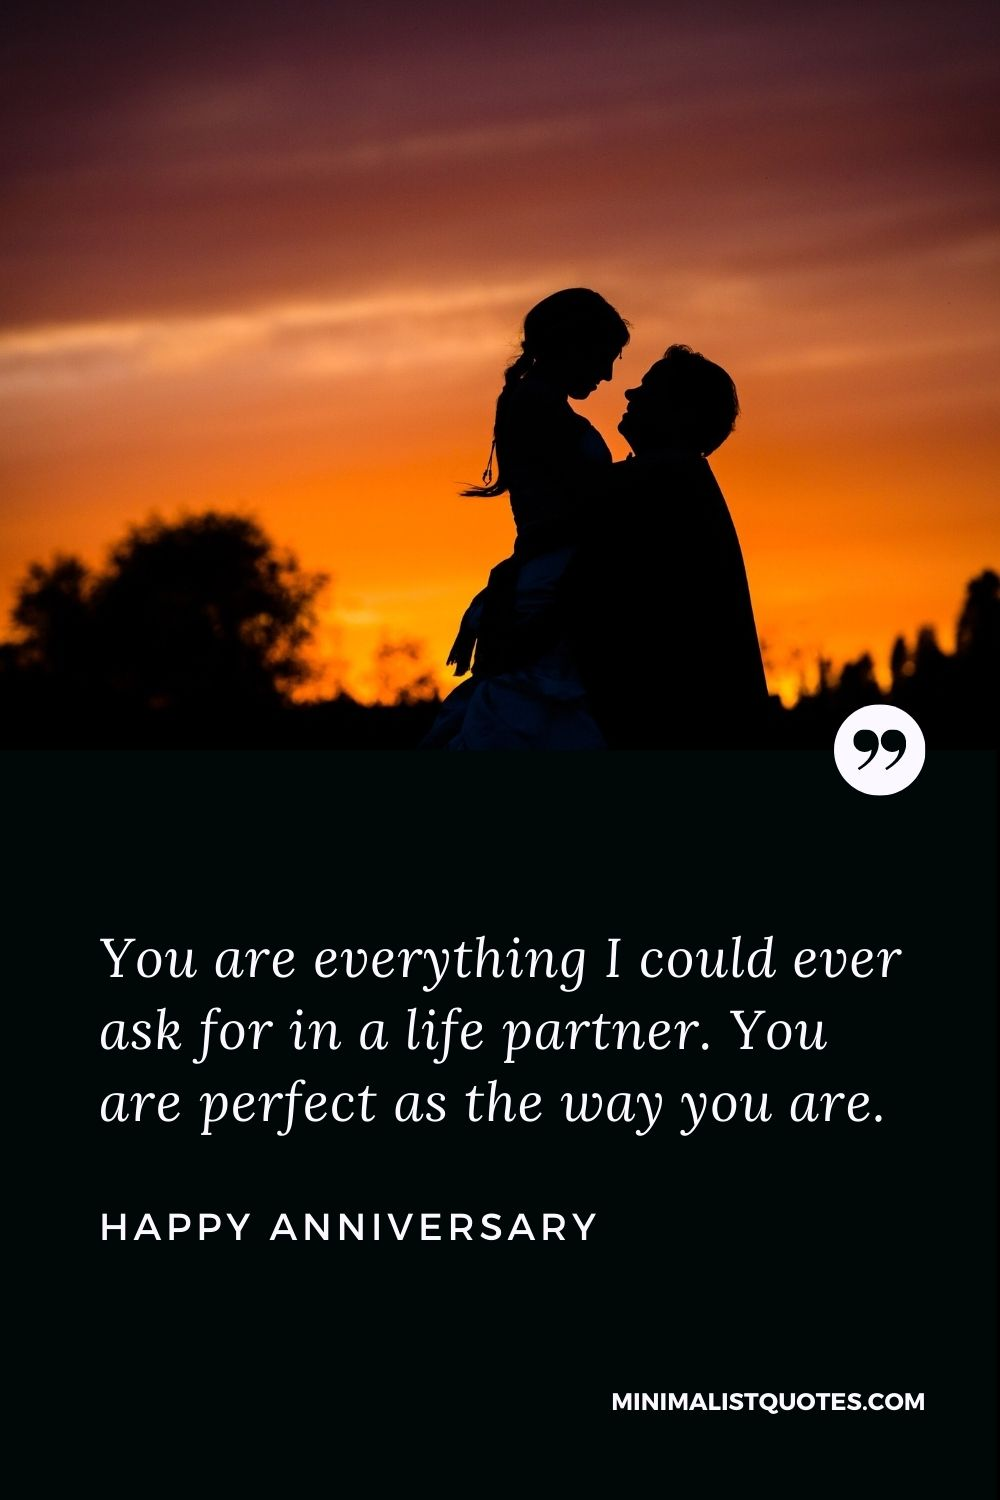 Happy Anniversary Wish - You are everything I could ever ask for in a life partner. You are perfect as the way you are.